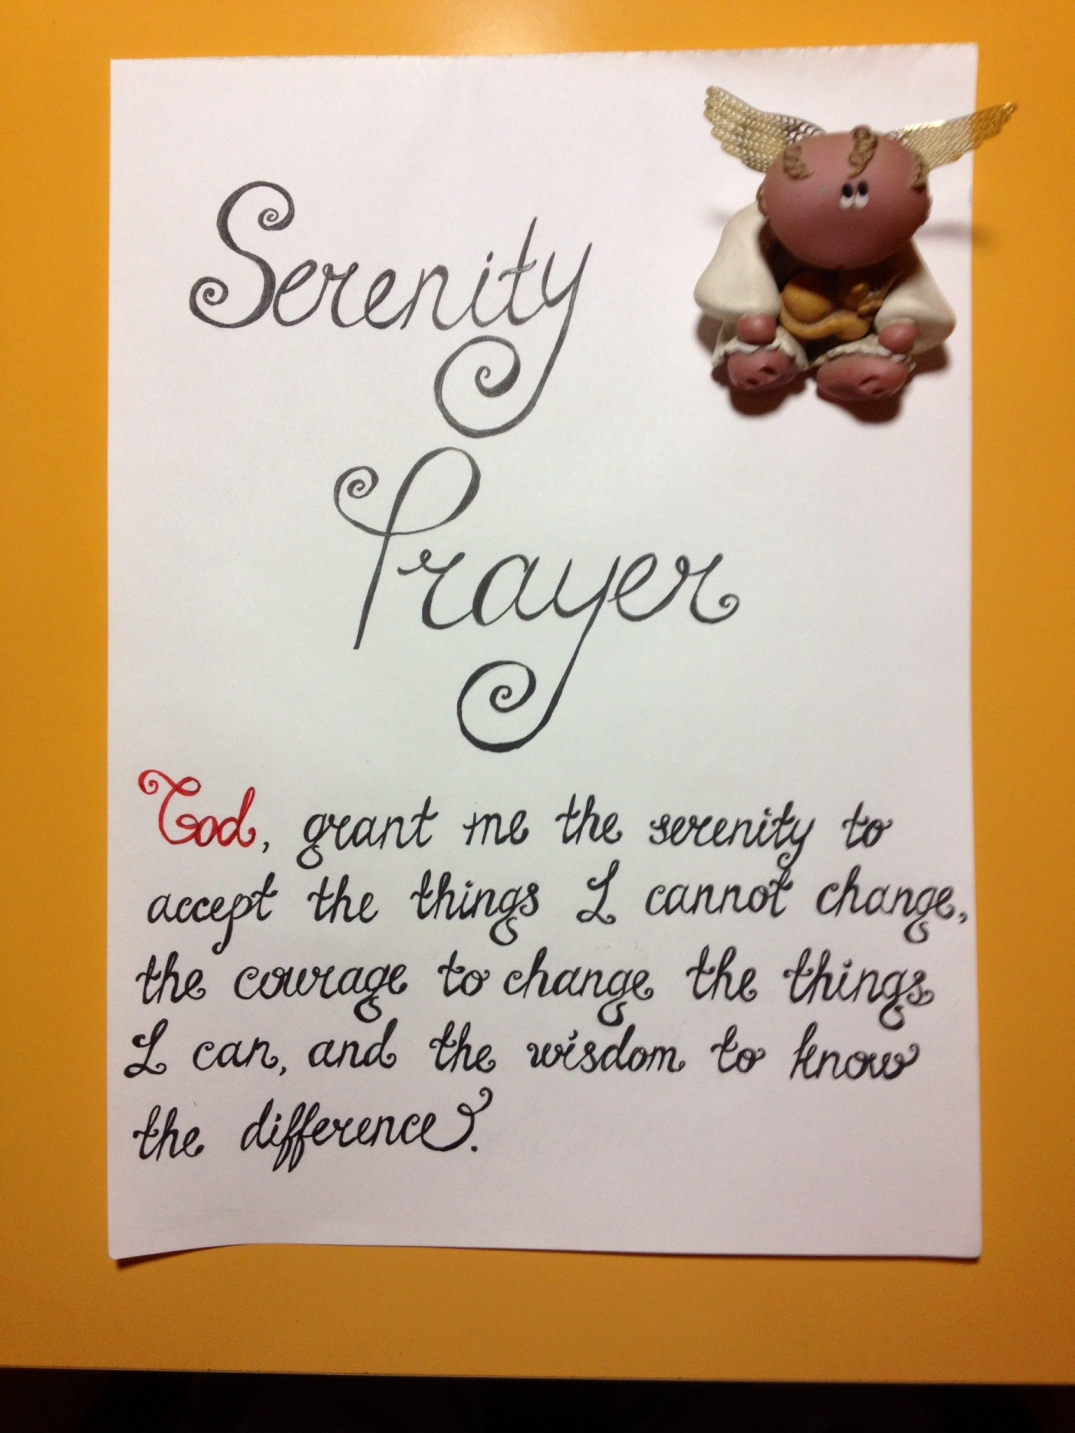 Serenity Prayer - One Happy Blog